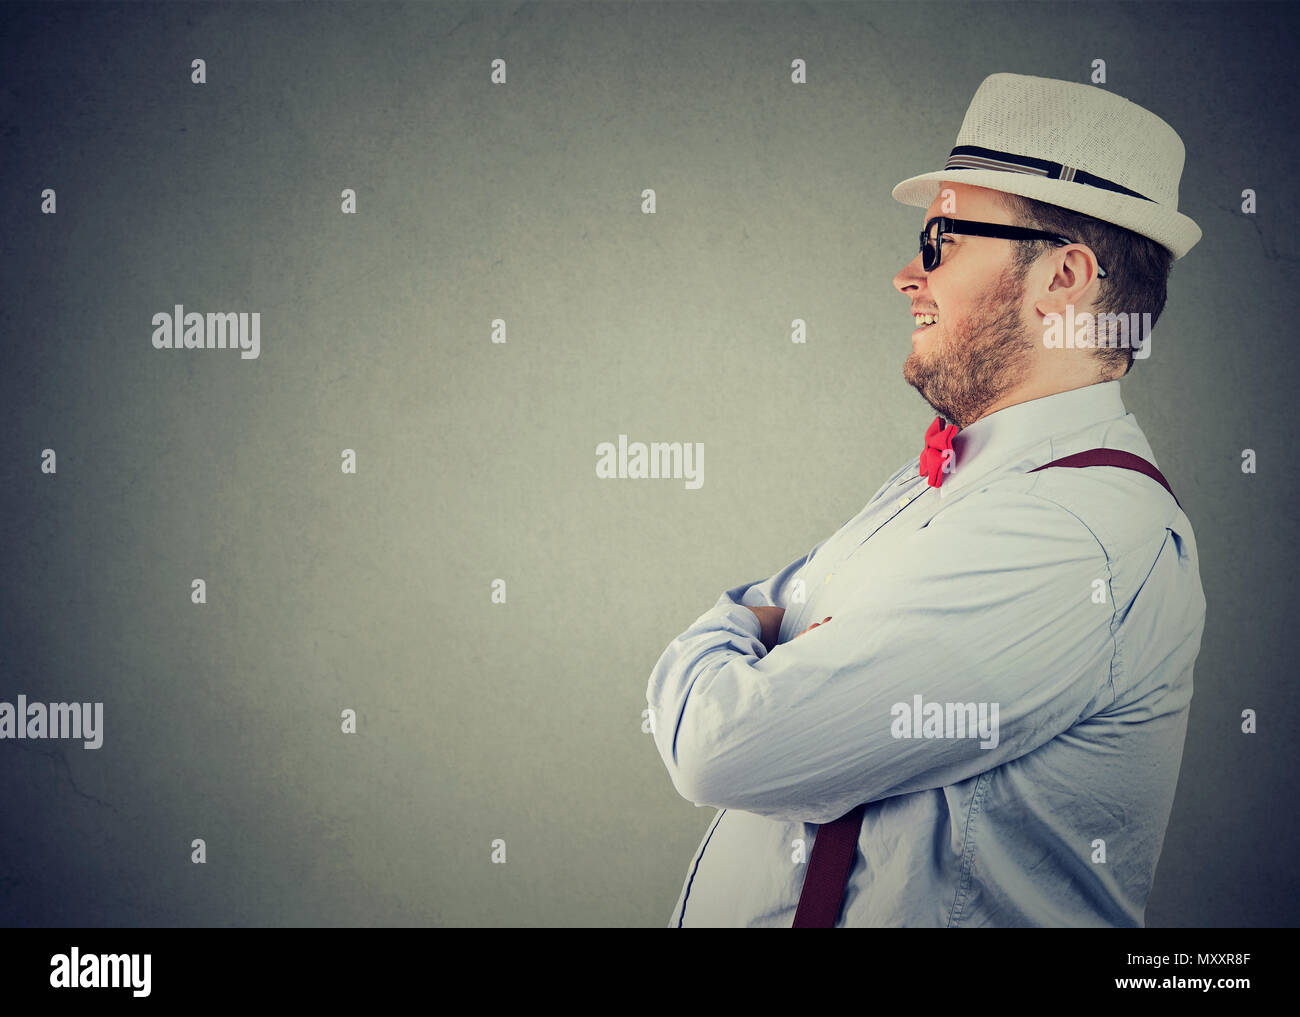 Side view of a chubby happy man in elegant outfit with bow tie and straw hat looking away confidently - Stock Image